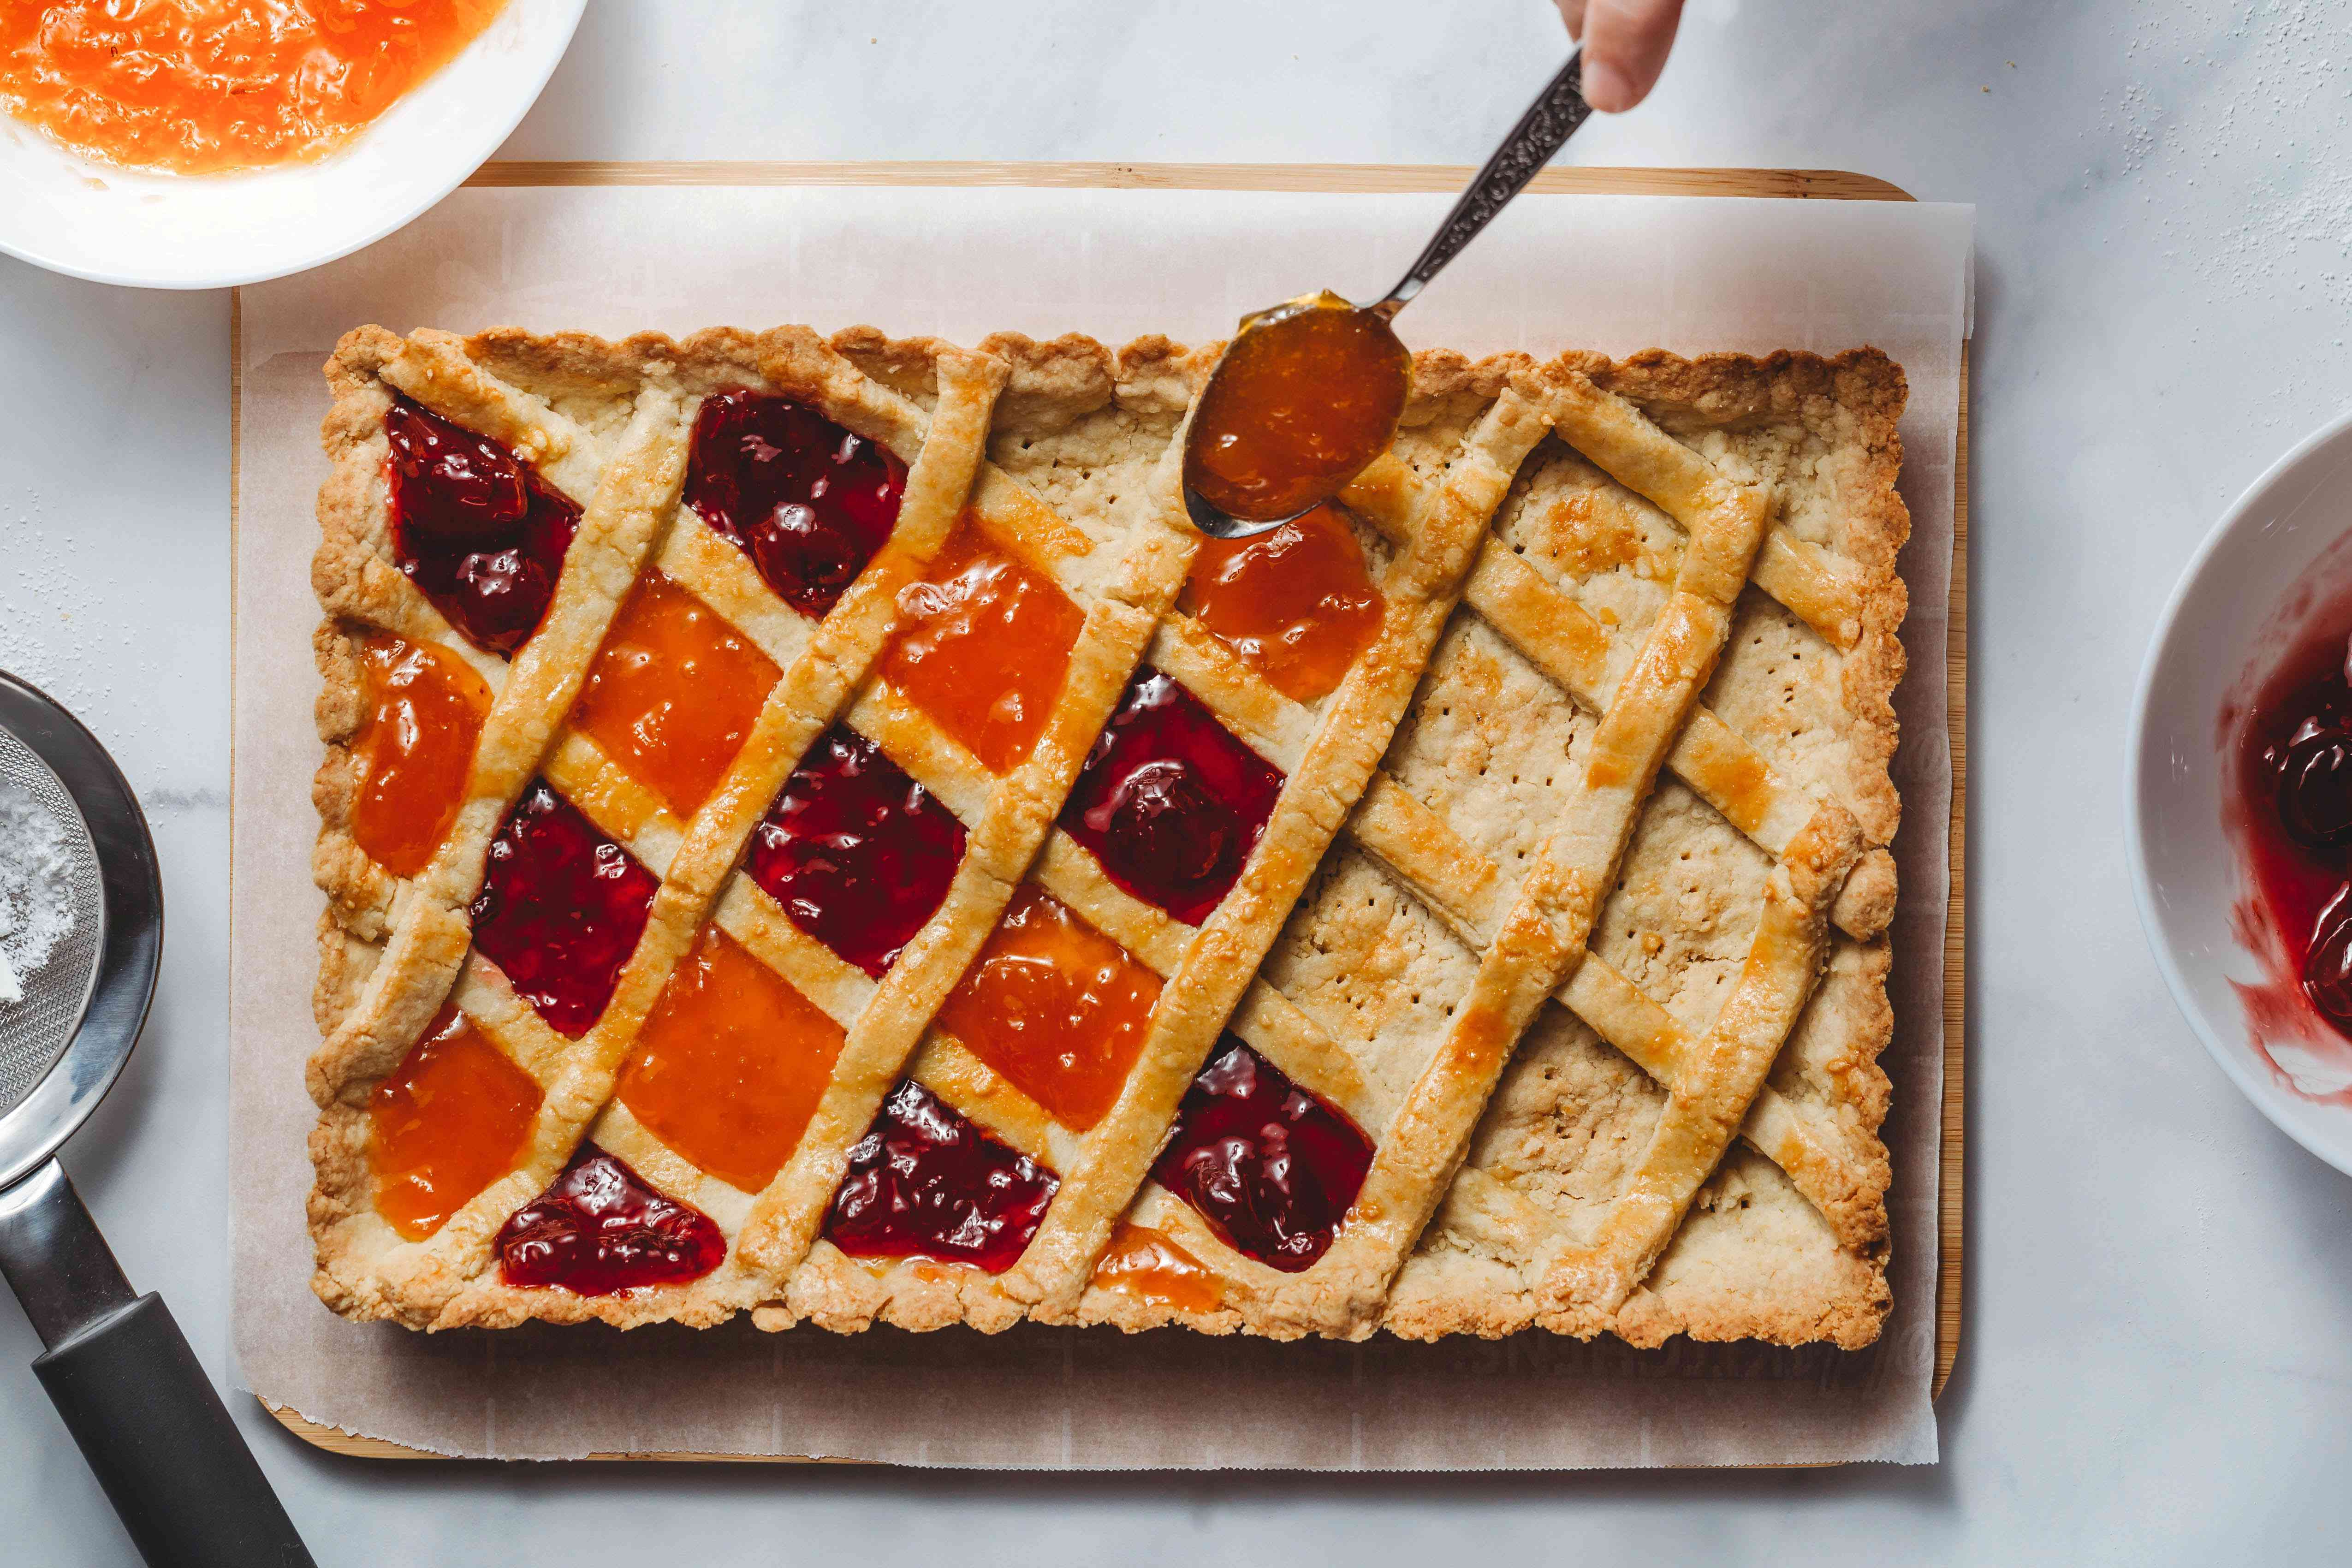 tart being filled with jam